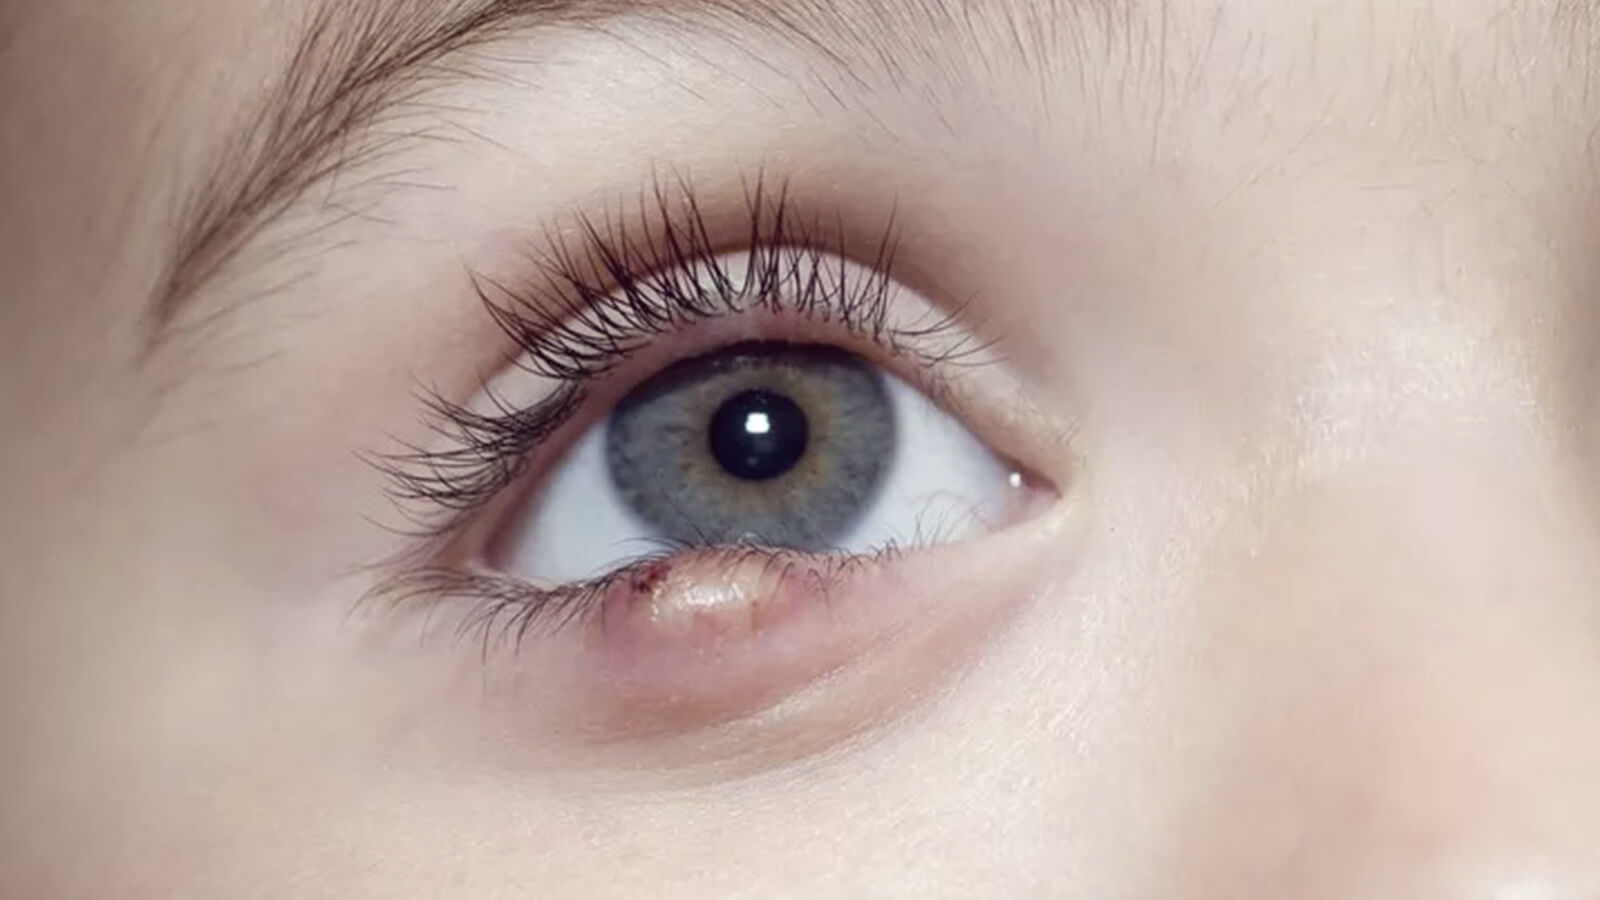 What is Stye and how to get rid of it?